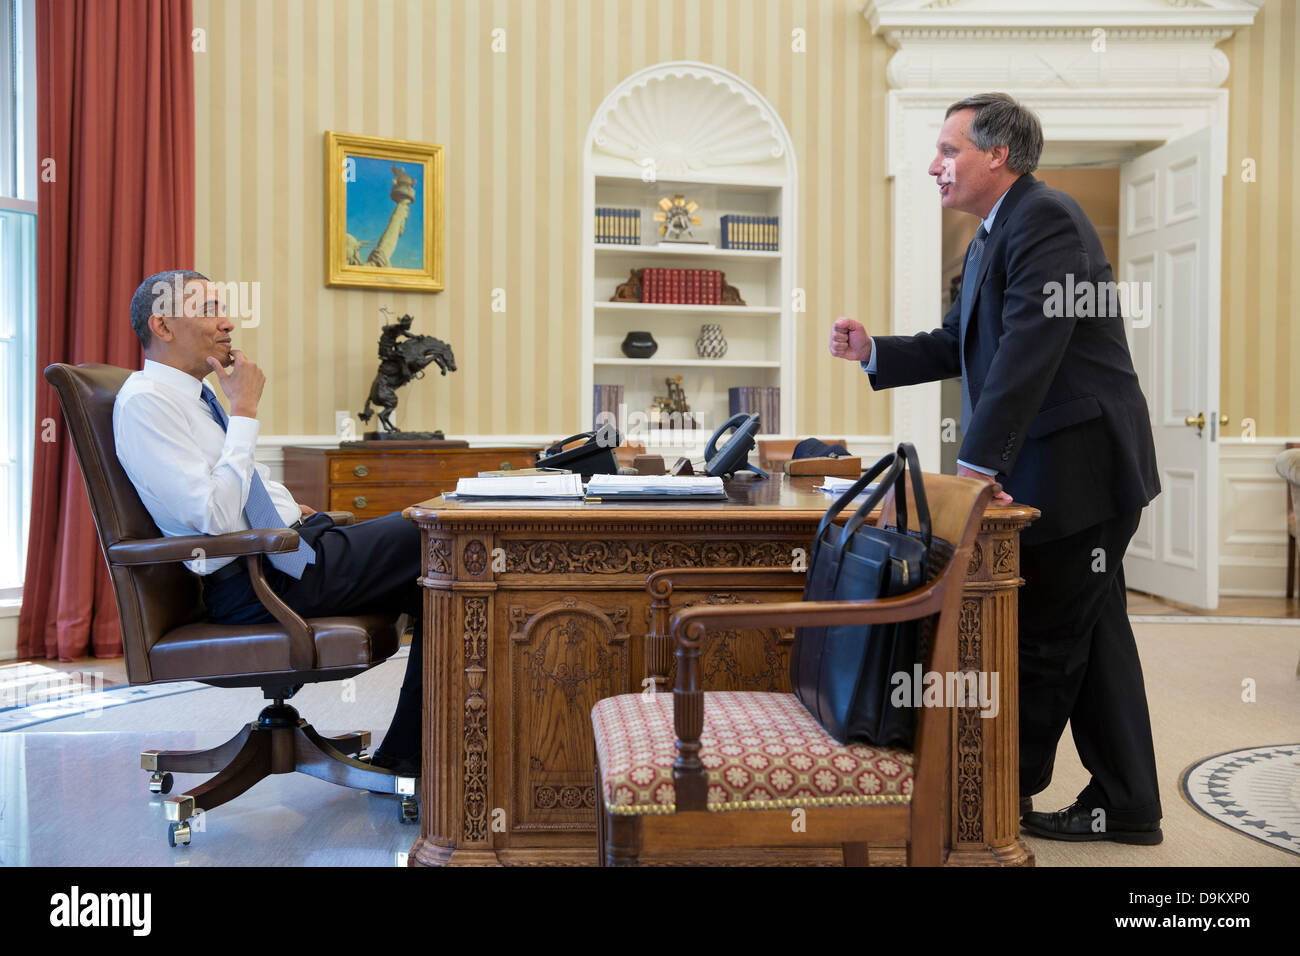 US President Barack Obama talks with Mark Childress, Deputy Chief of Staff for Planning, in the Oval Office of the - Stock Image